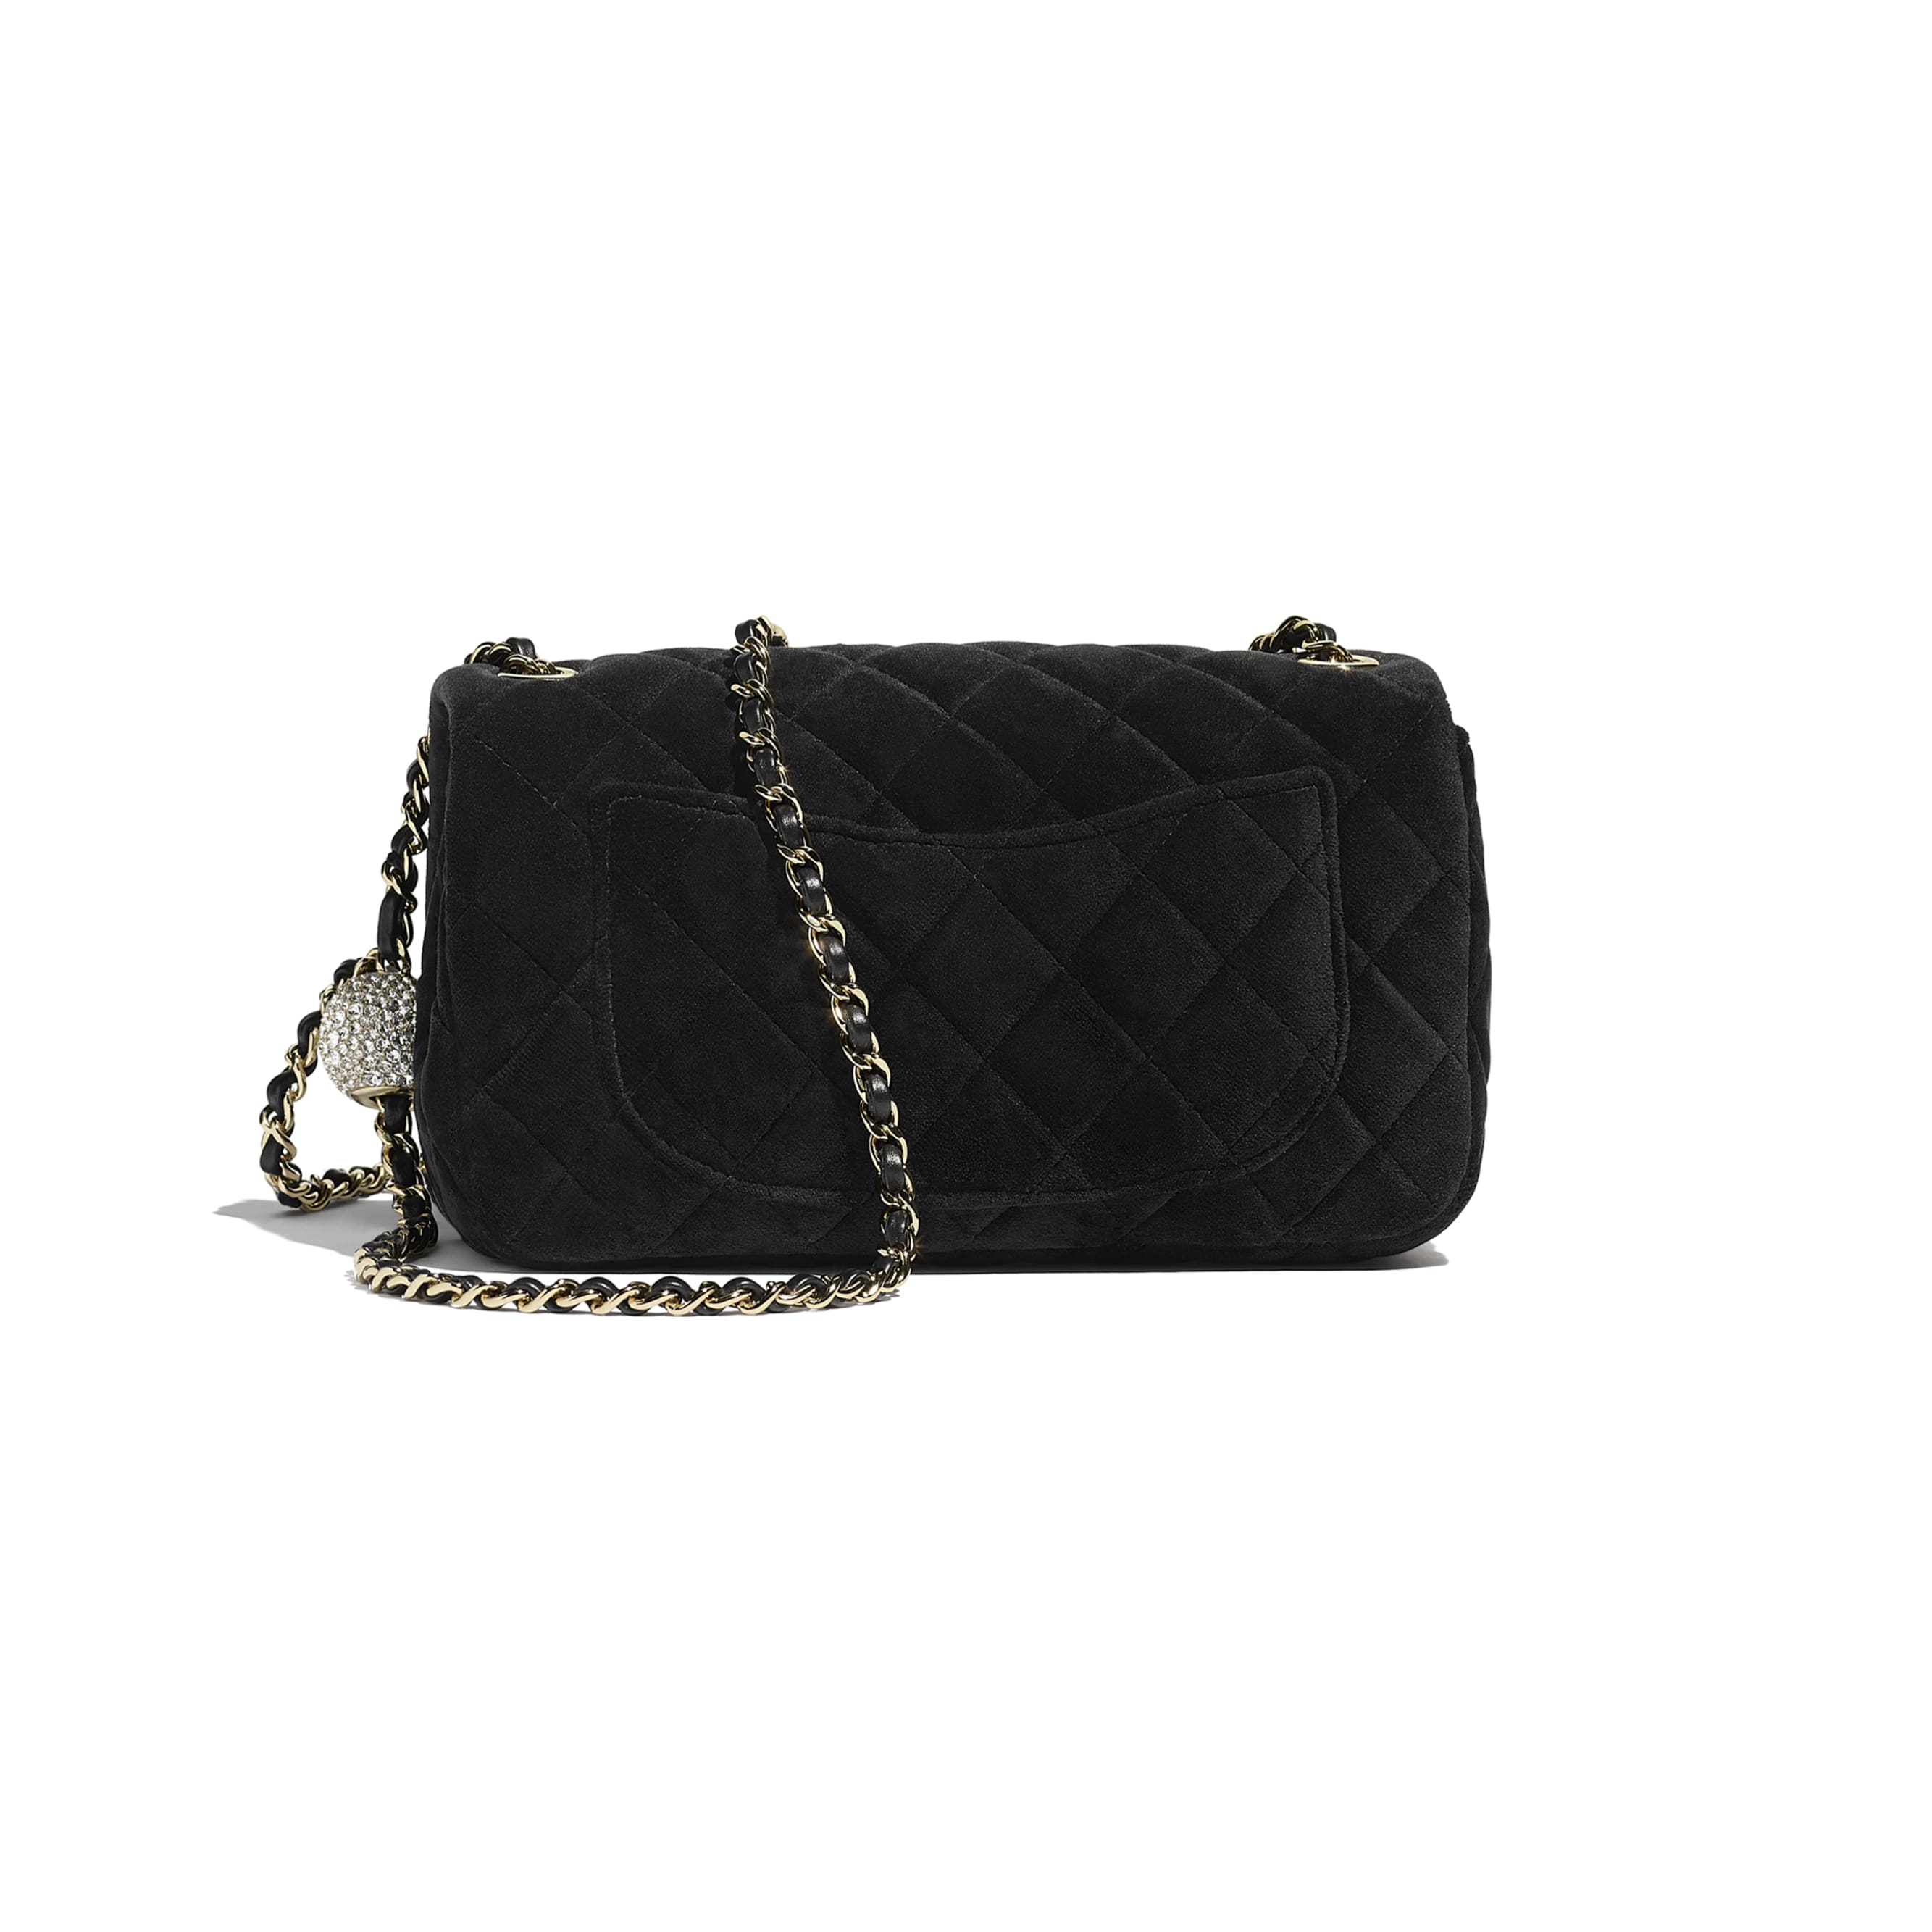 Flap Bag - Black - Velvet, Diamanté & Silver-Tone Metal - CHANEL - Alternative view - see standard sized version